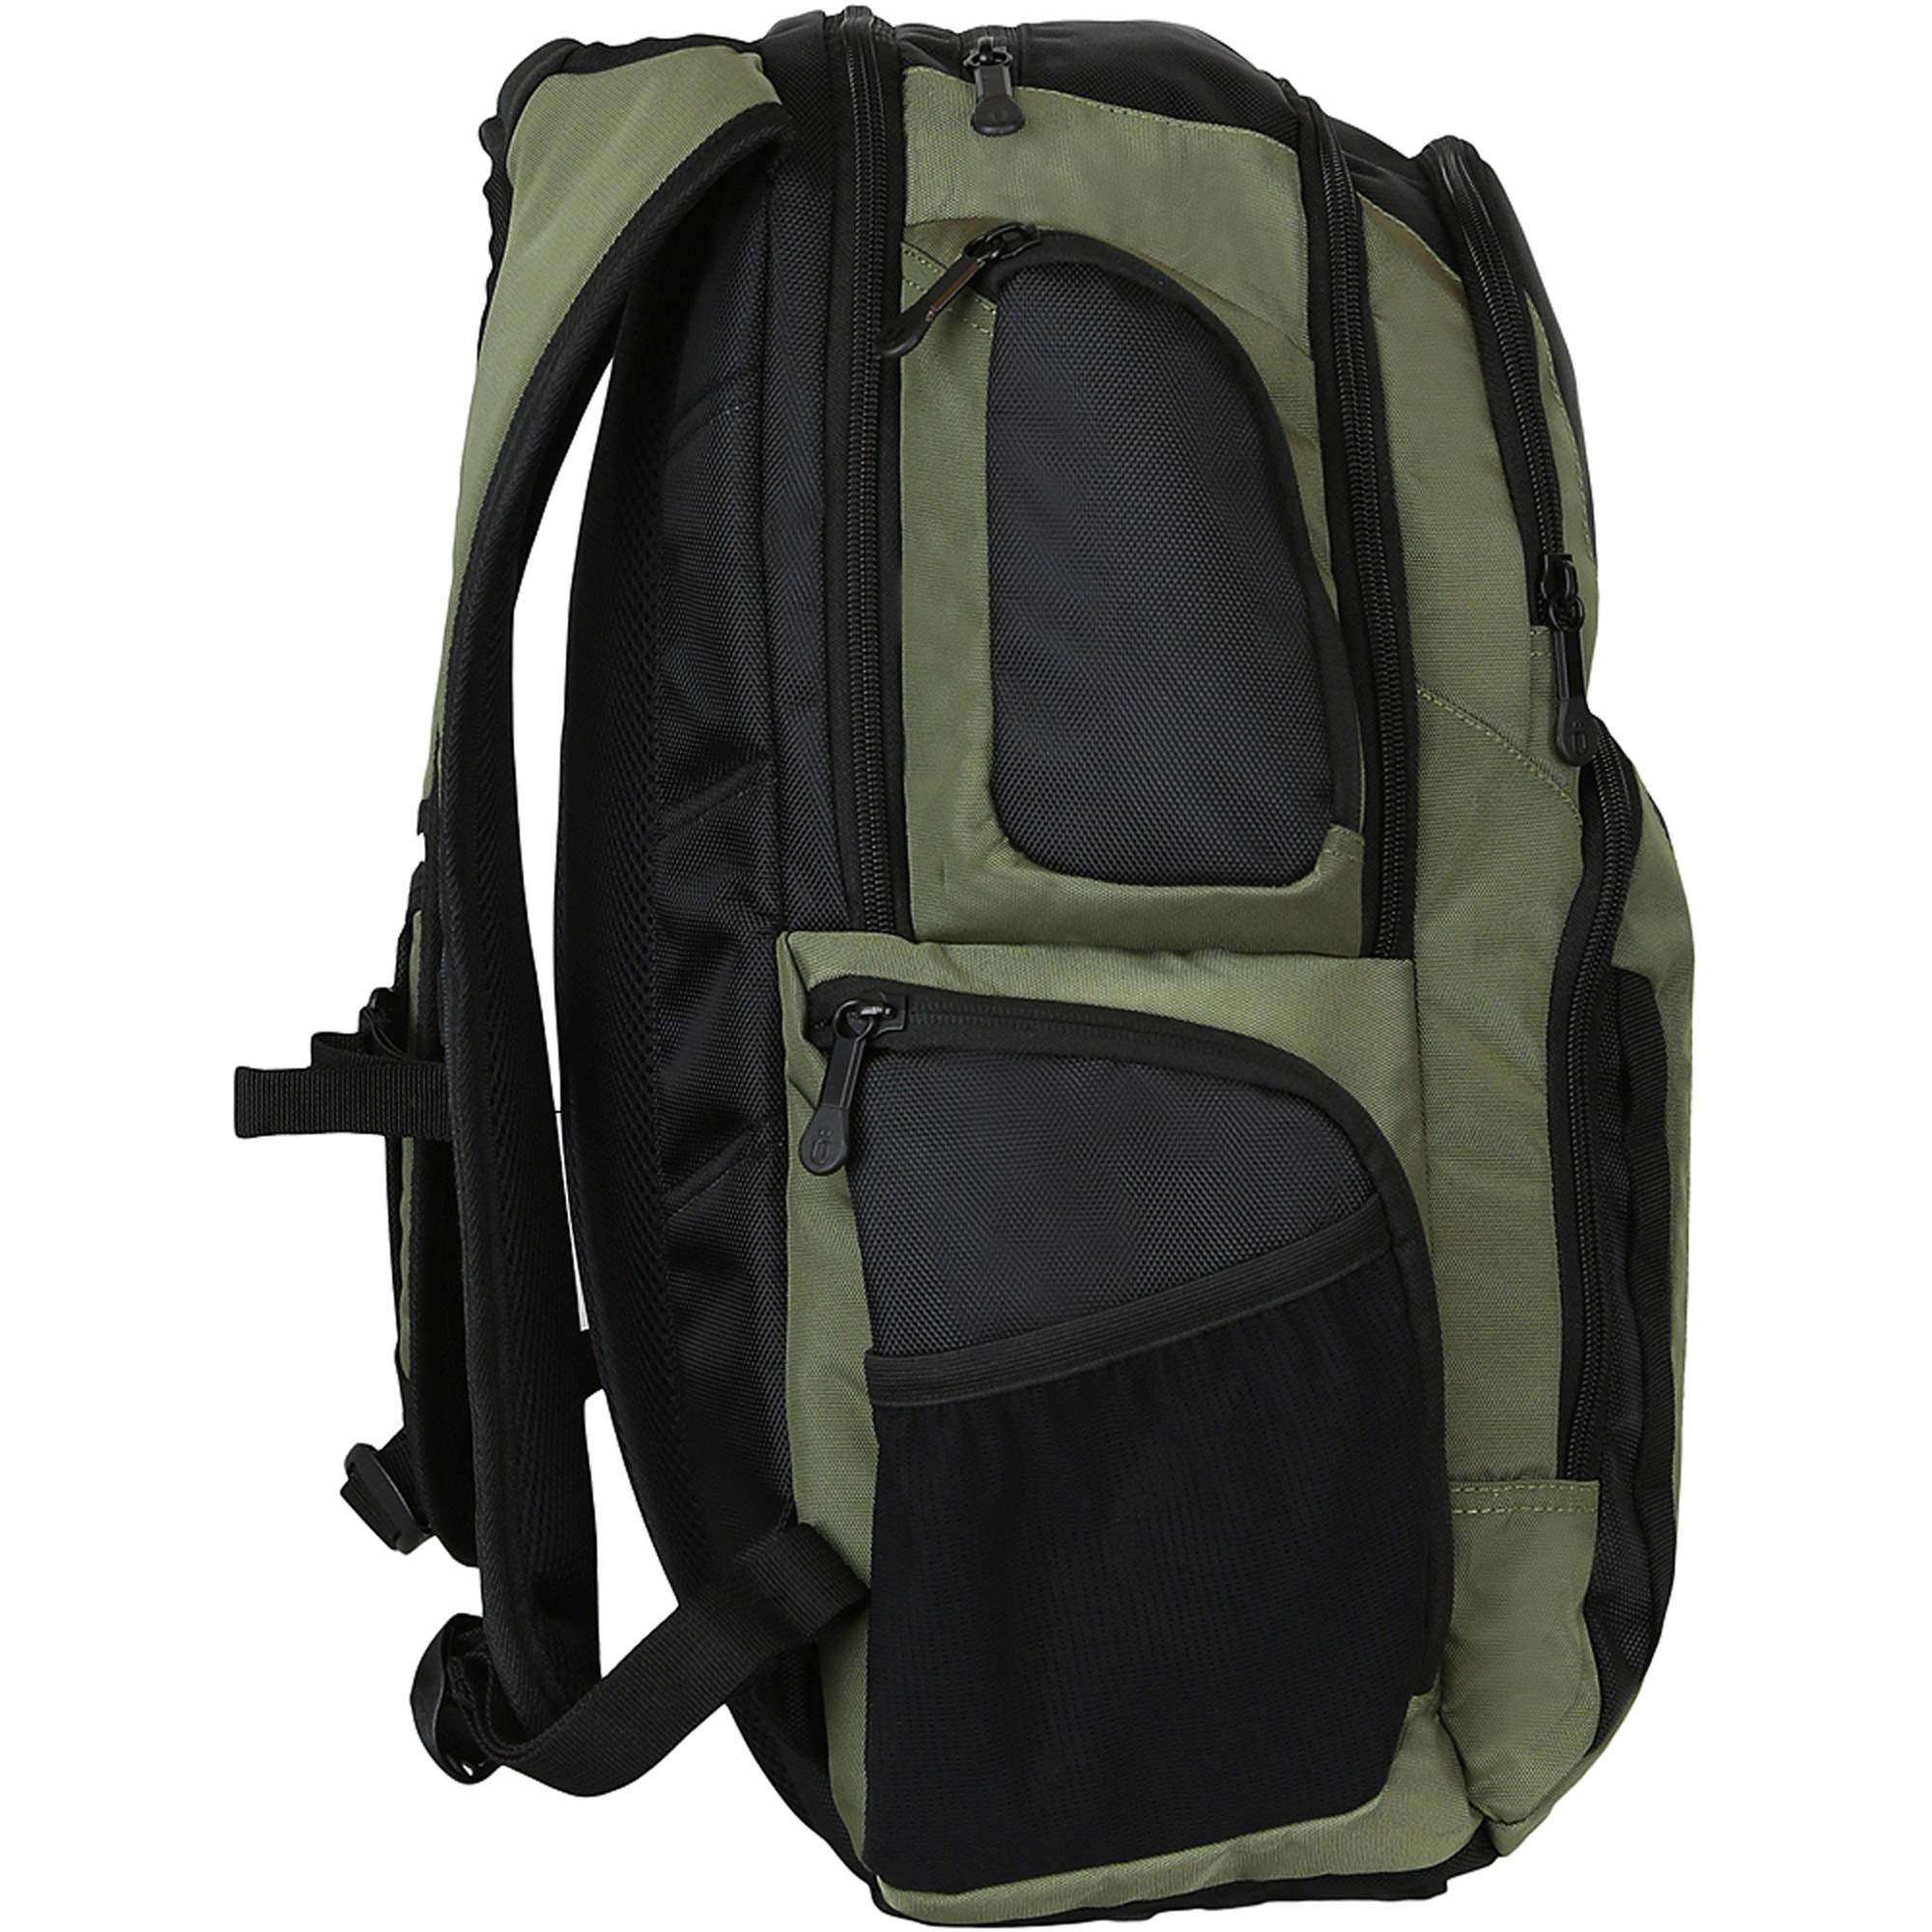 Orben Cargo Laptop Backpack - Walmart.com